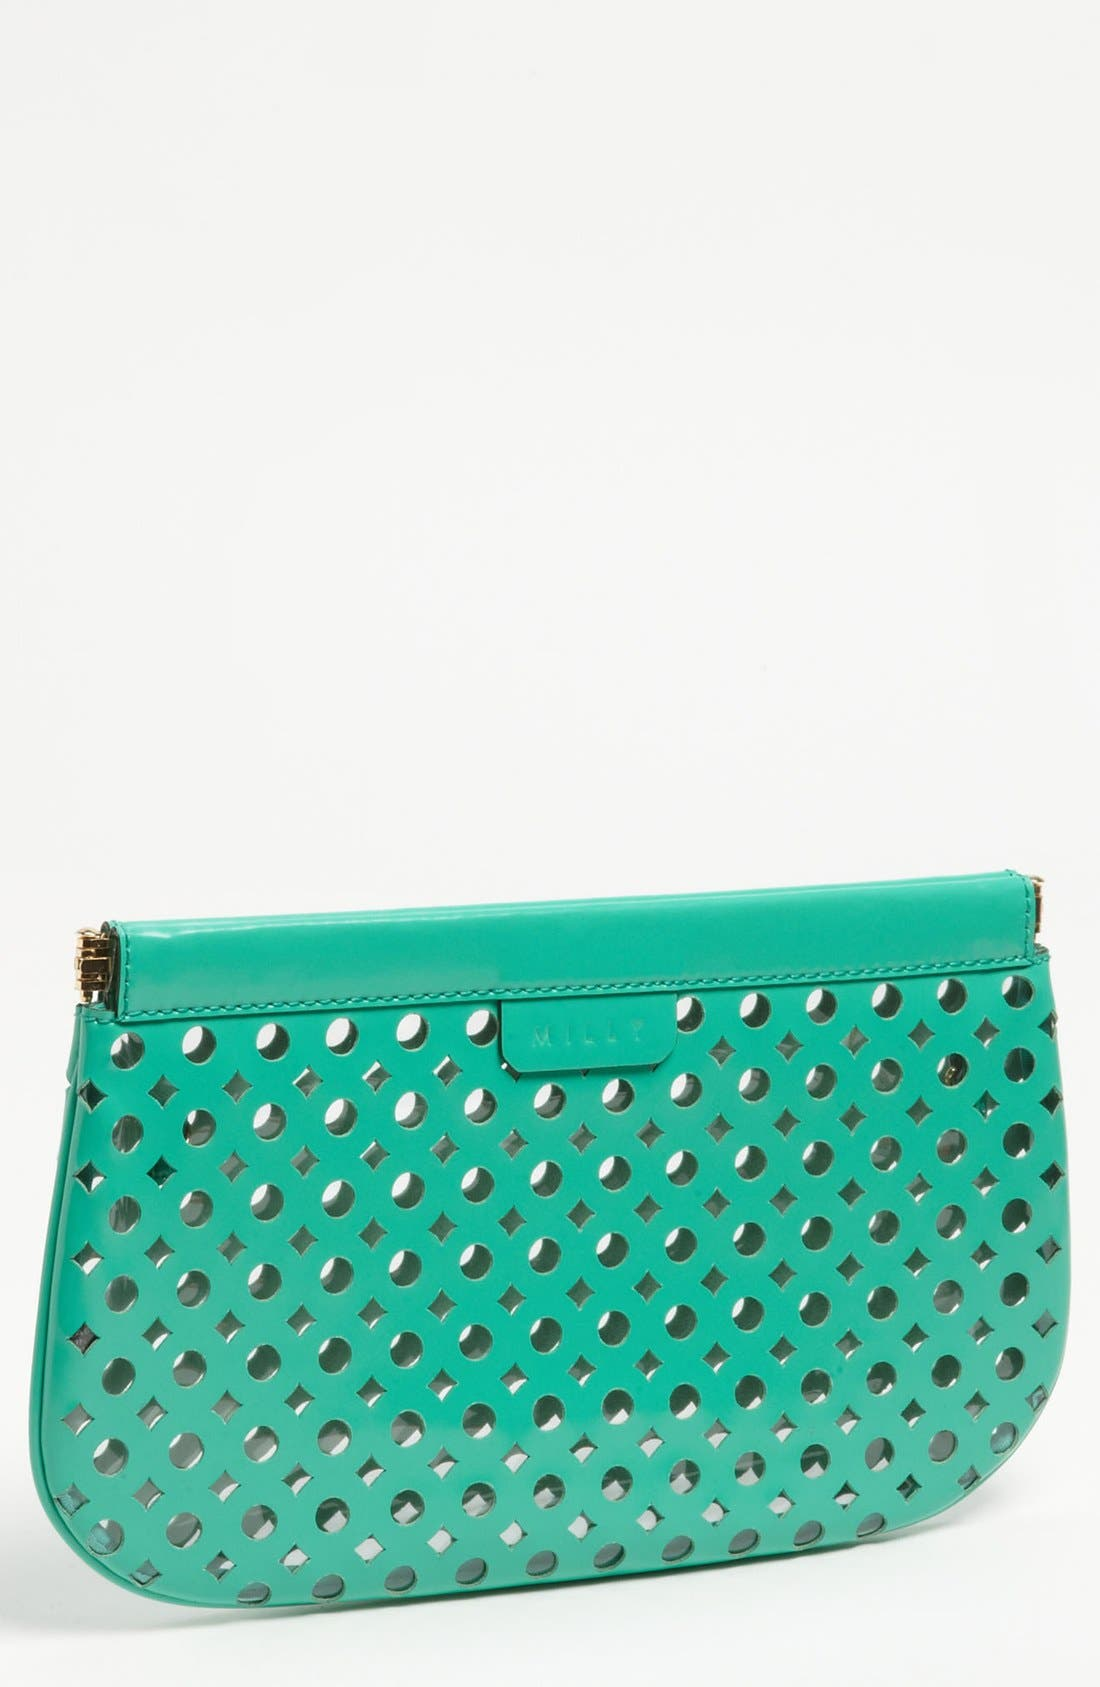 Alternate Image 1 Selected - Milly 'Addison Facile' Patent Leather Clutch